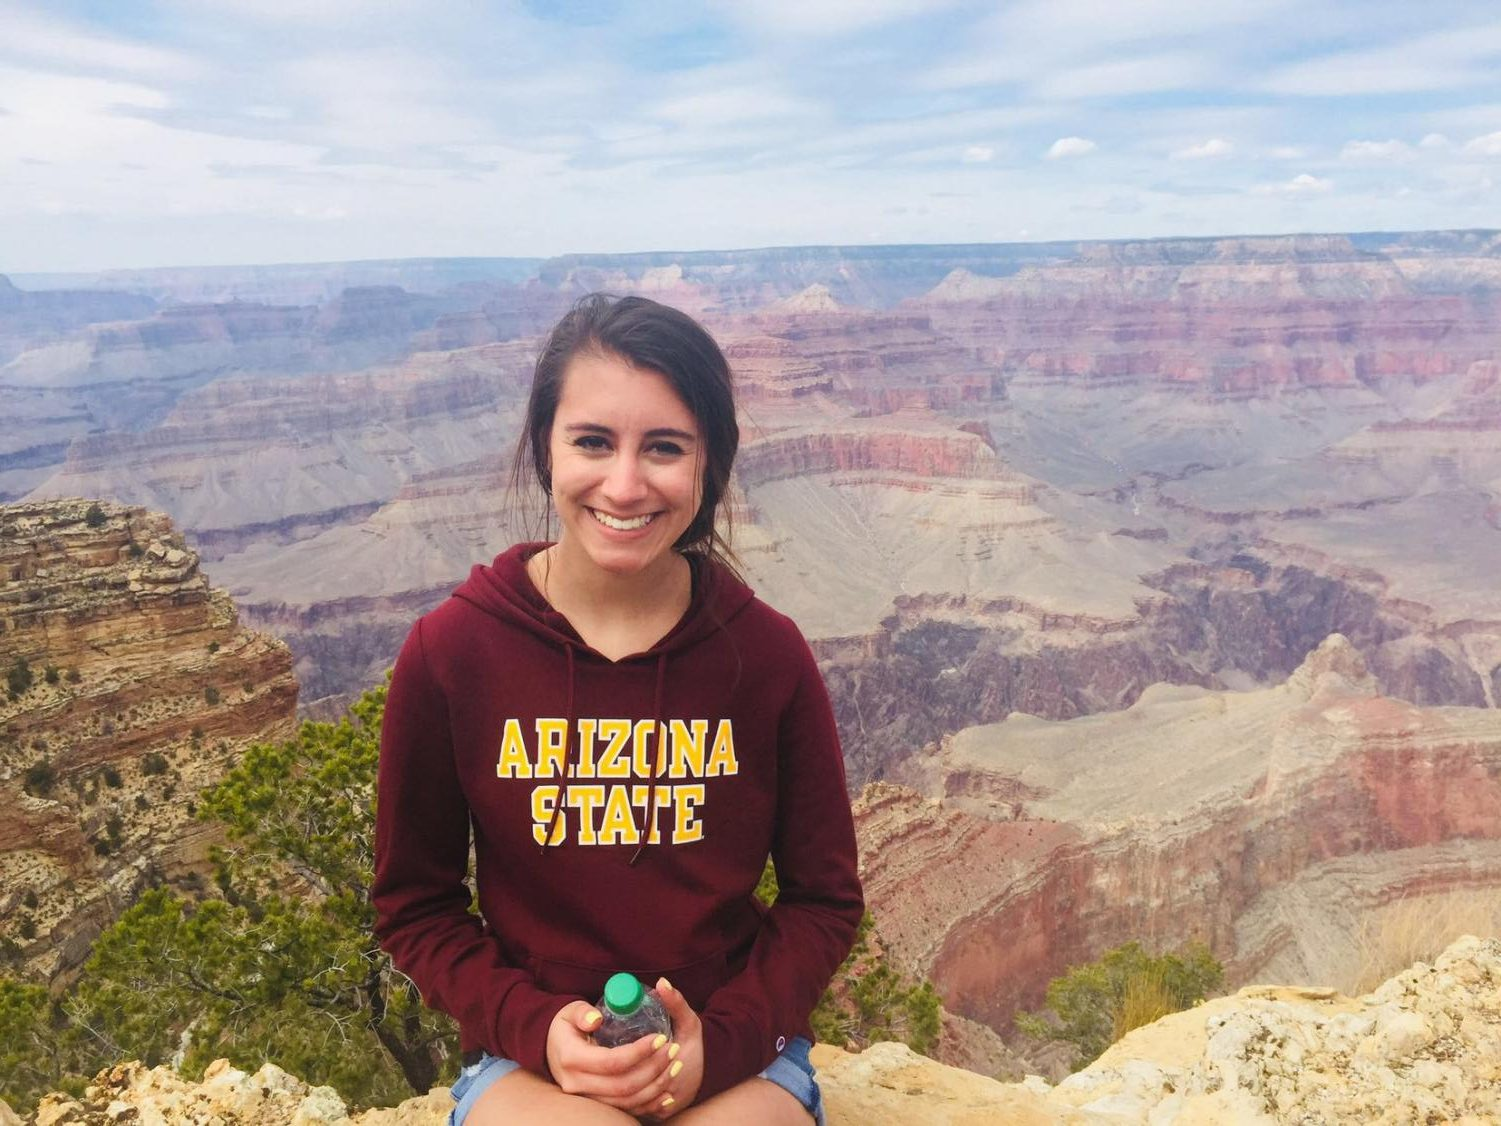 Jessica Walter wears her Arizona State sweatshirt on a trip to the Grand Canyon, she will be much closer to this earthly wonder when she starts school at Arizona State in the fall.